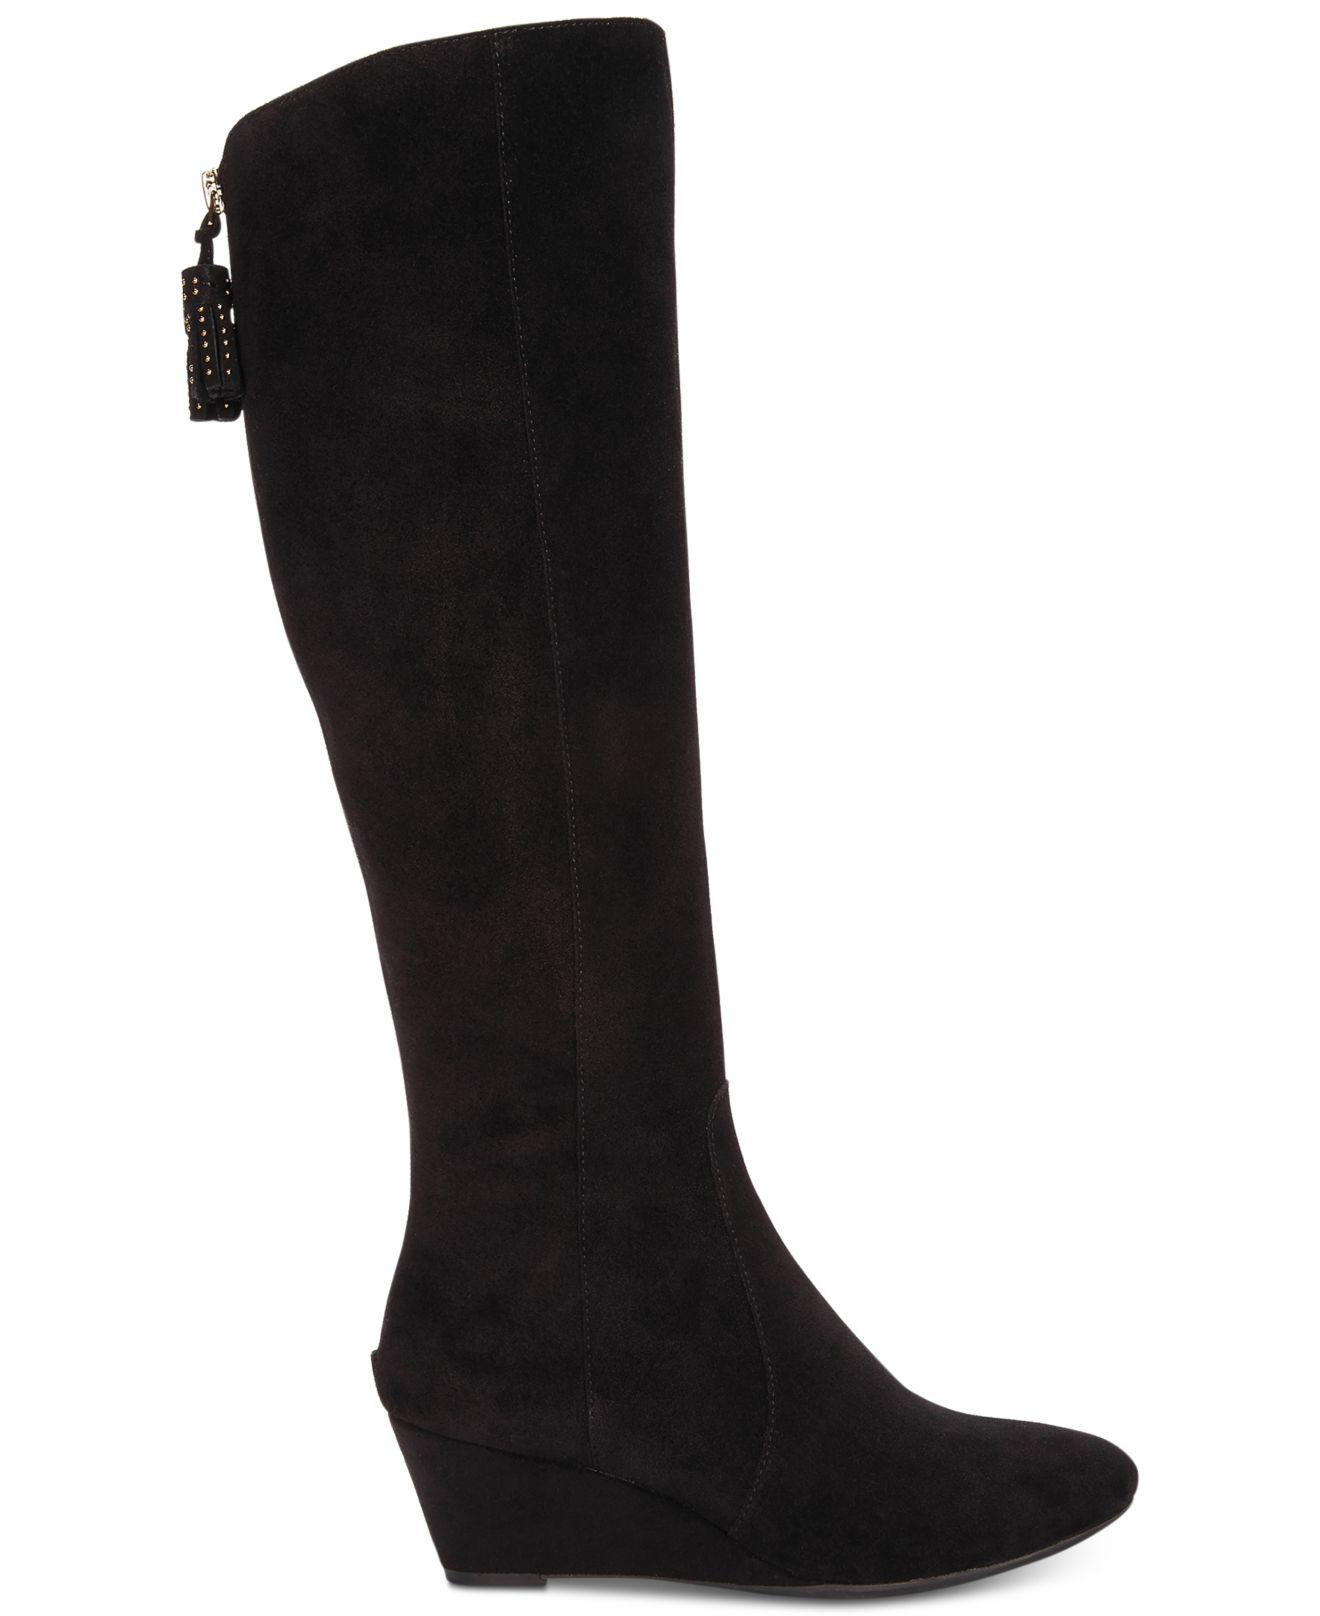 5ae7f2023fa Lyst - Anne Klein Azriel Tall Boots in Black